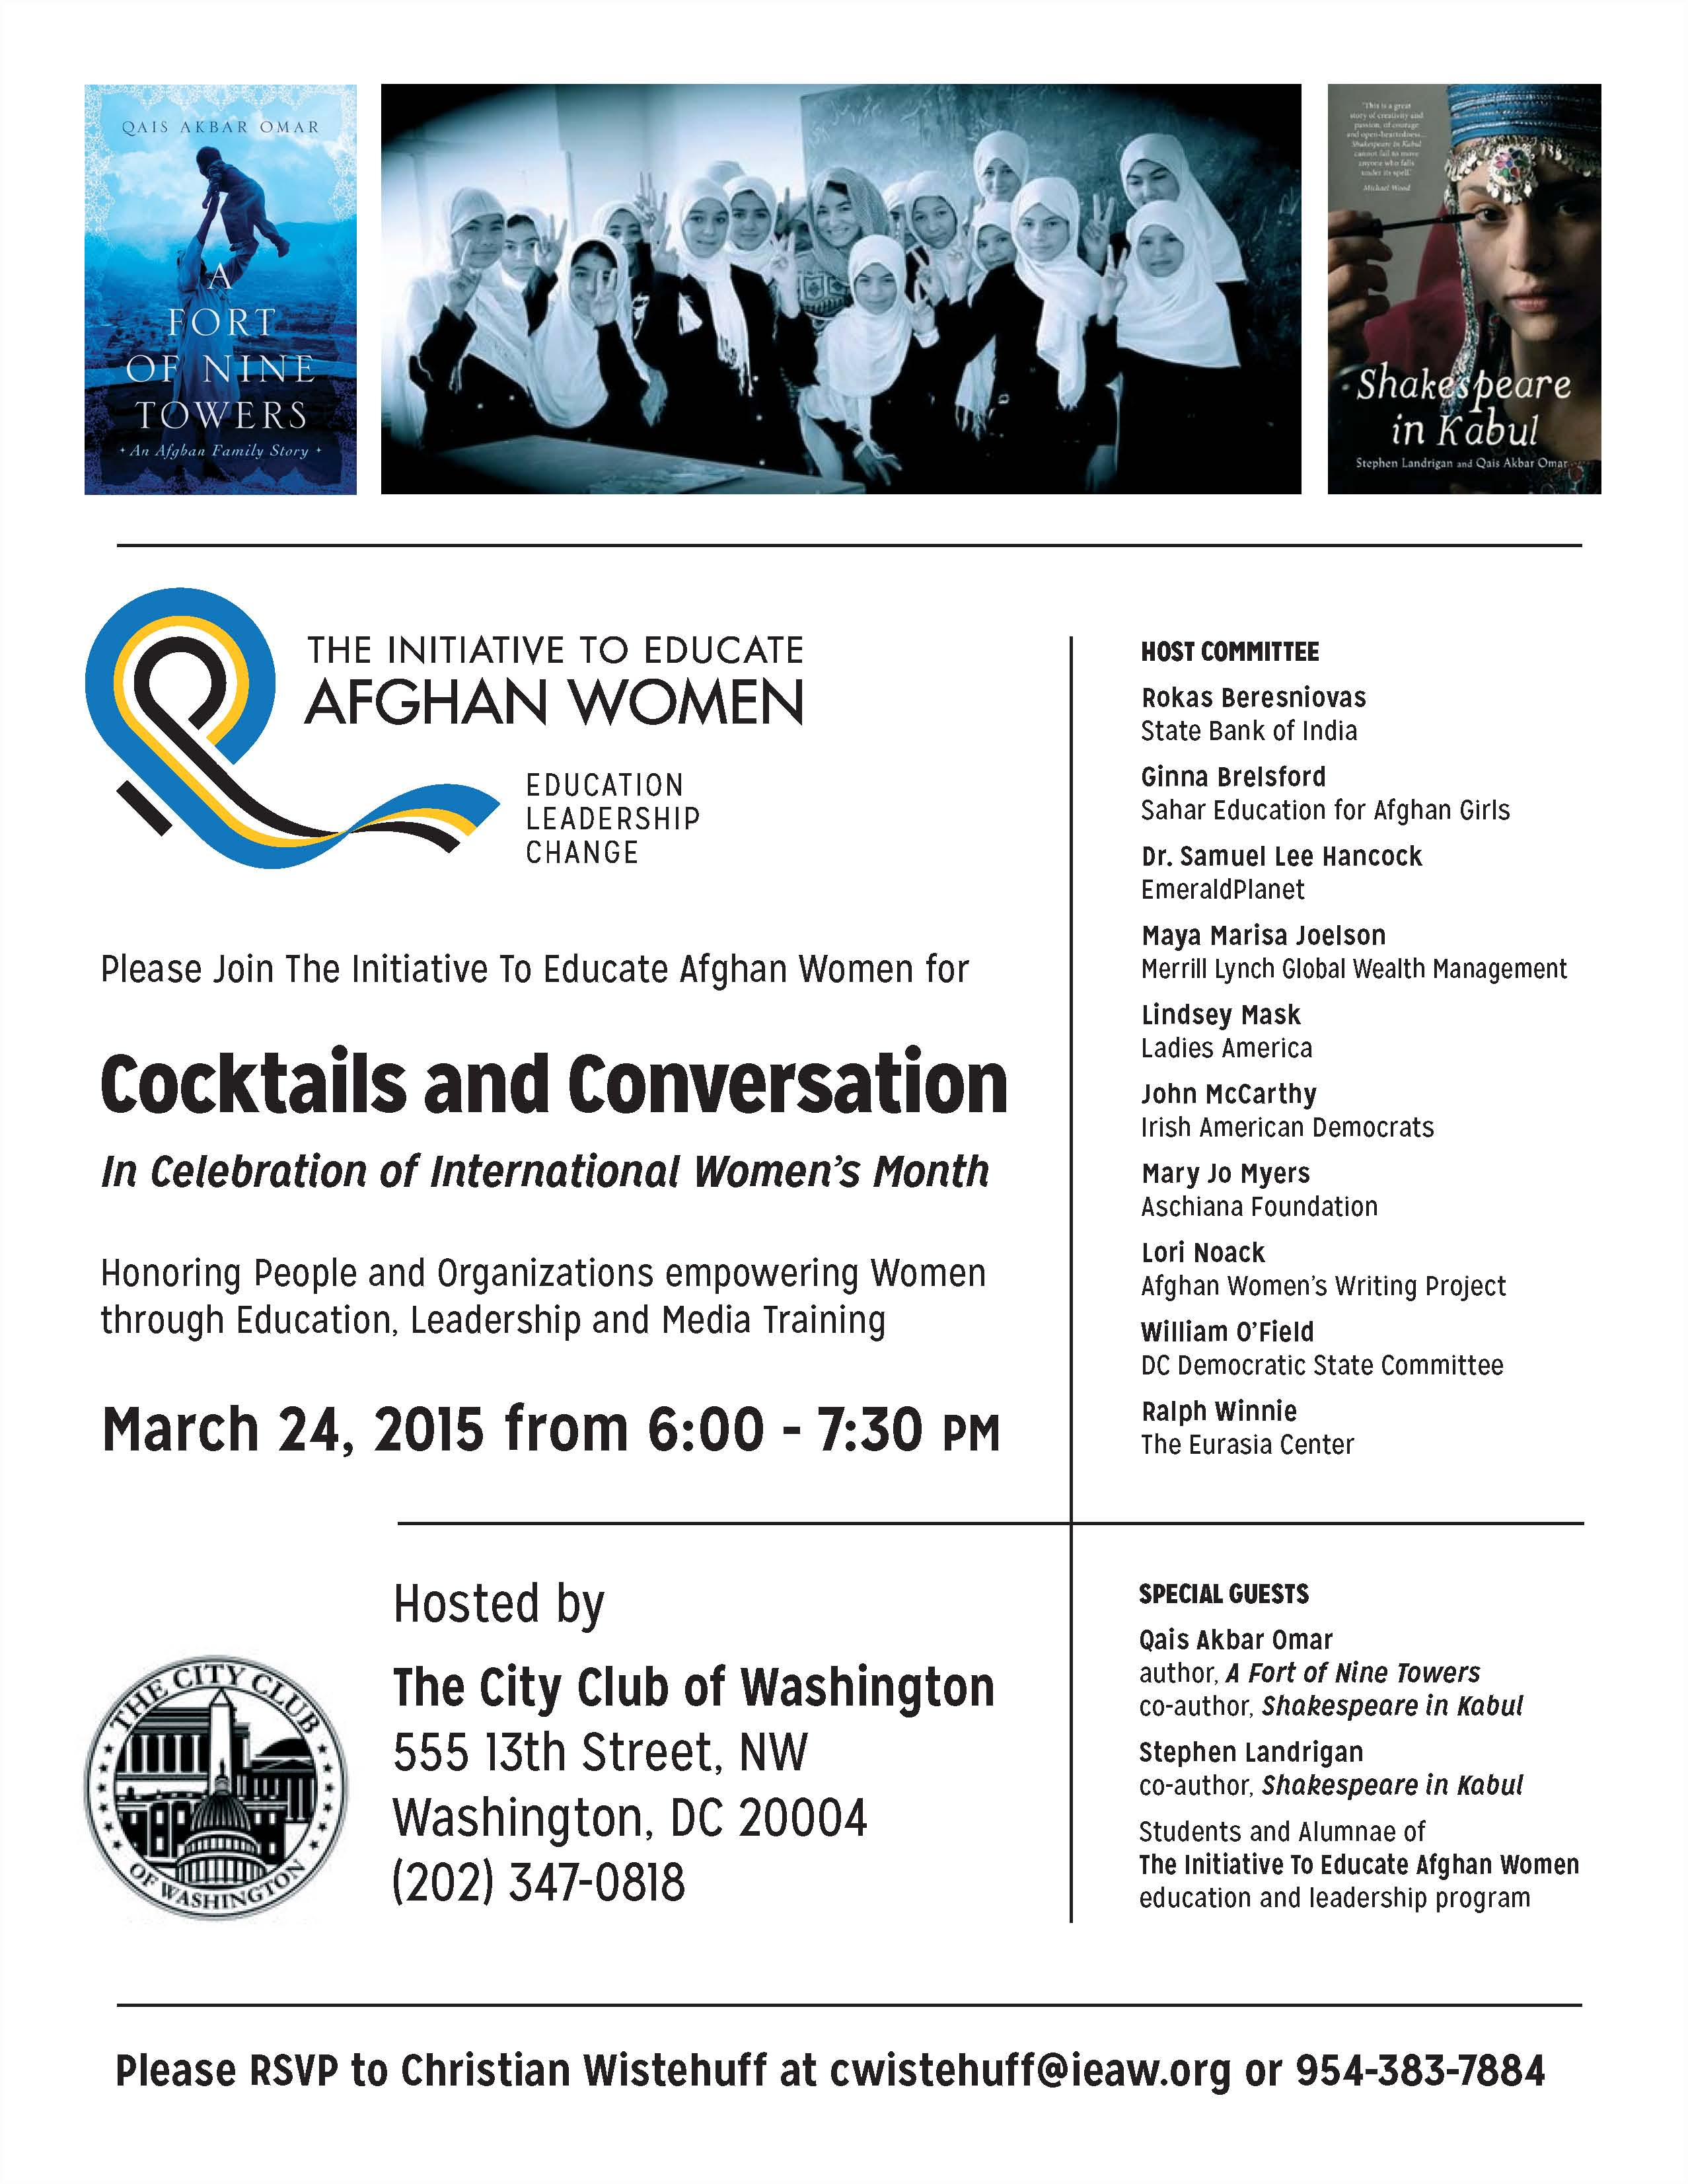 The Initiative To Educate Afghan Women  Cocktails and Conversation Event